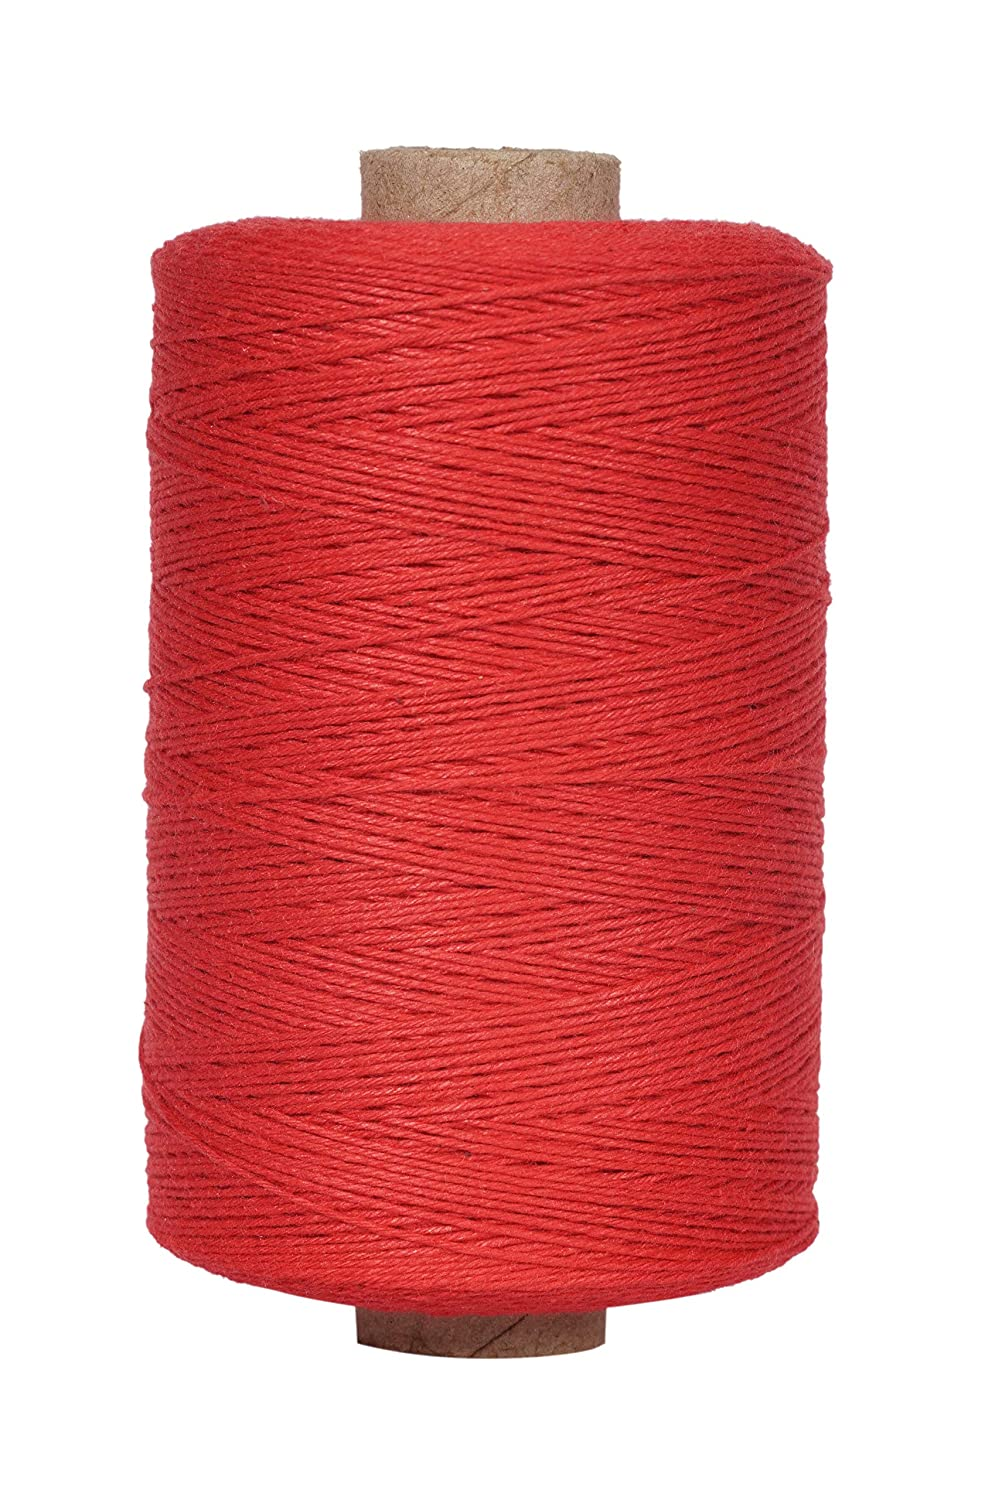 Warp Thread for Weaving Loom - 1 Spool of 850 Yards 8/4 Warp Yarn 100% Cotton - Natural/Off White Color - Perfect Warping Thread for Weaving Tapestry Carpet Rug Blankets and Other Patterns Rising Peaks Products Inc